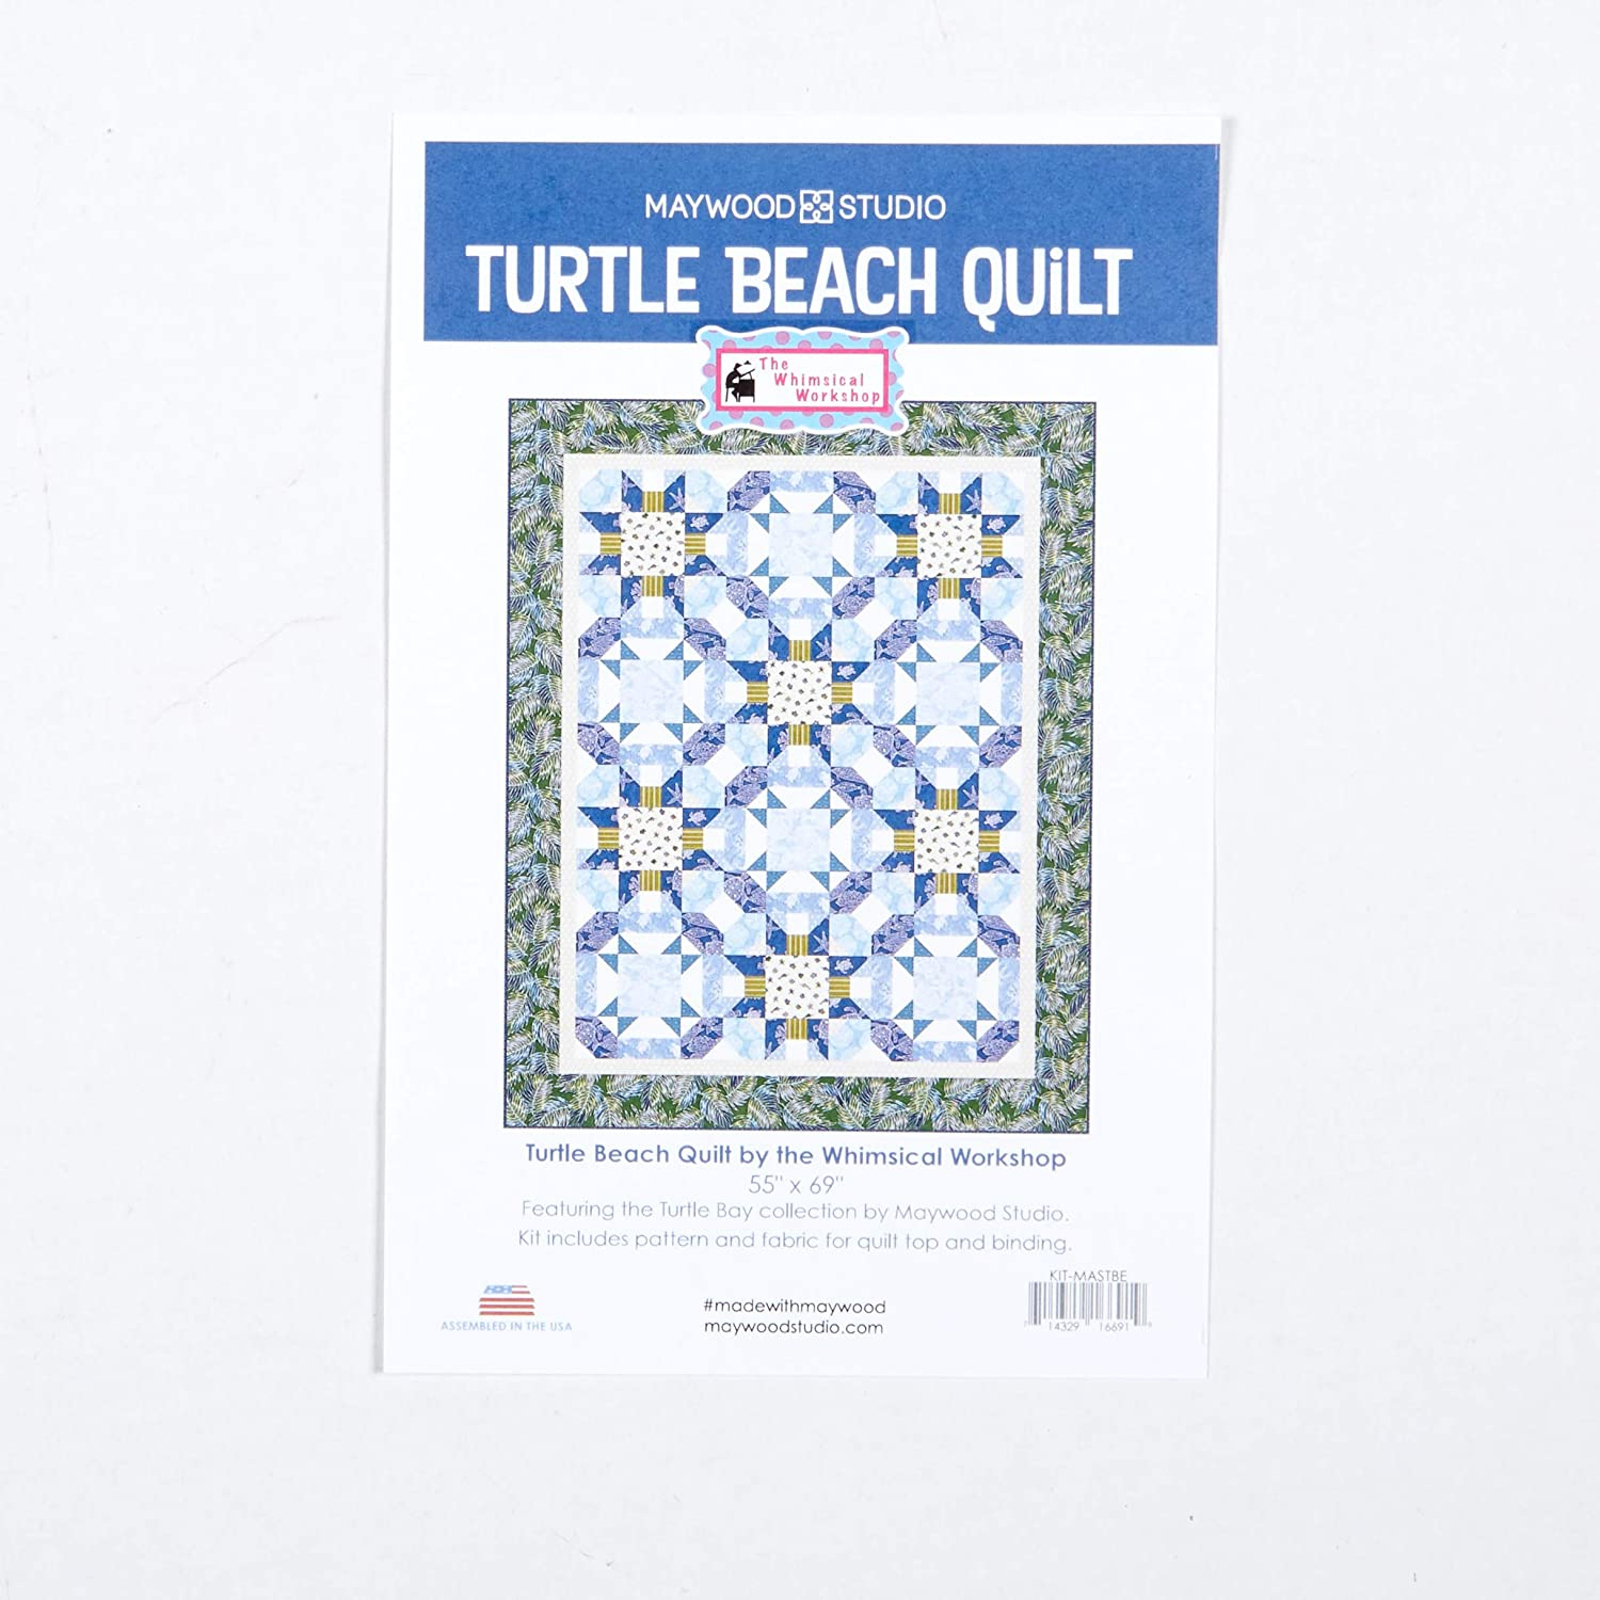 Turtle Bay Maywood Fabric Beach Ocean Themed Quilt Top Kit 55x69 Pattern Fabric for Top and Binding